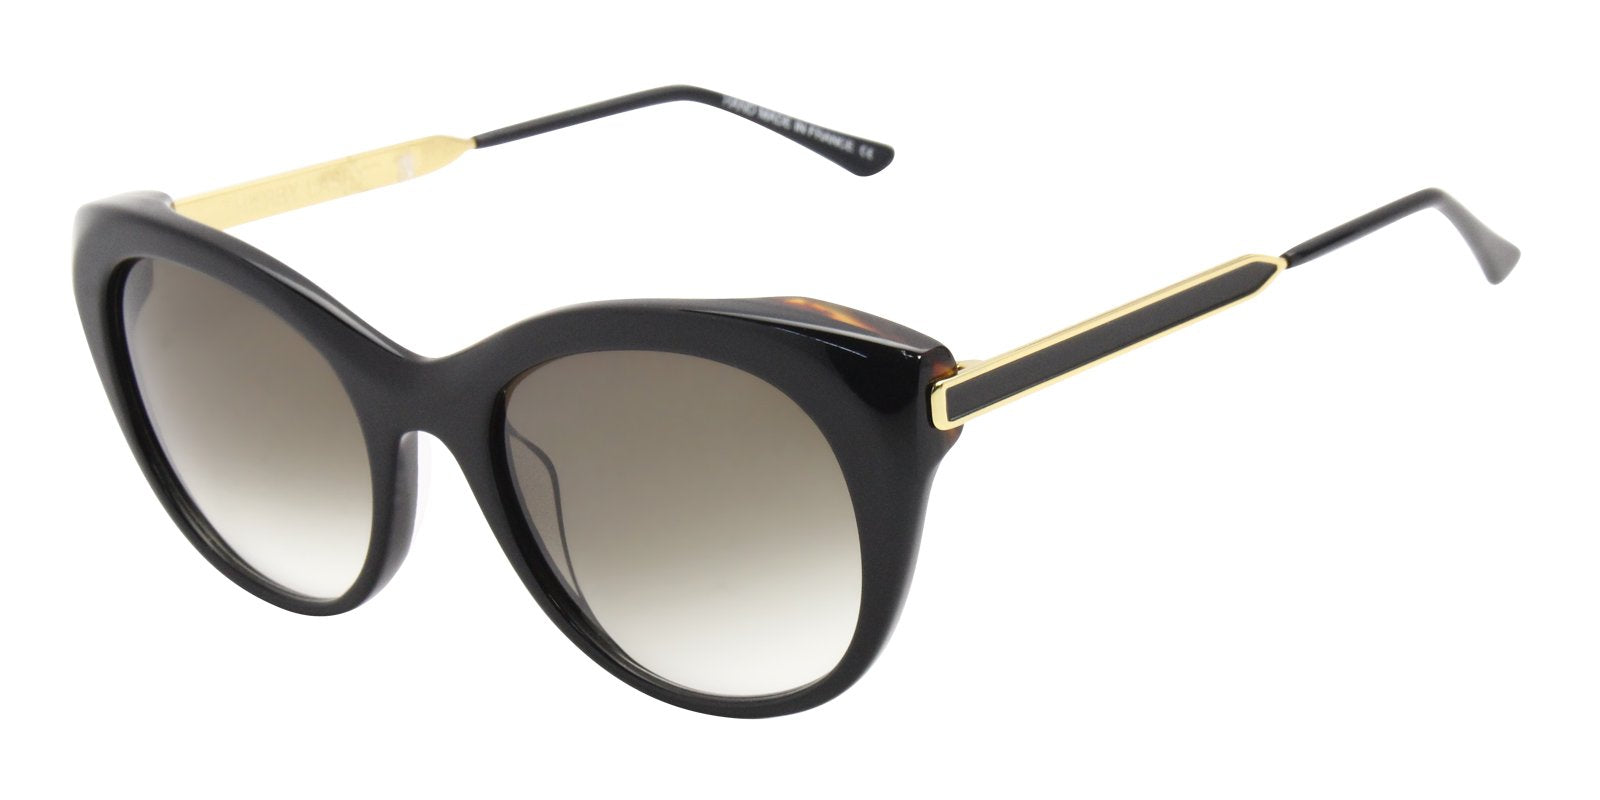 Thierry Lasry - Fingery Black Oval Women Sunglasses - 56mm-Sunglasses-Designer Eyes